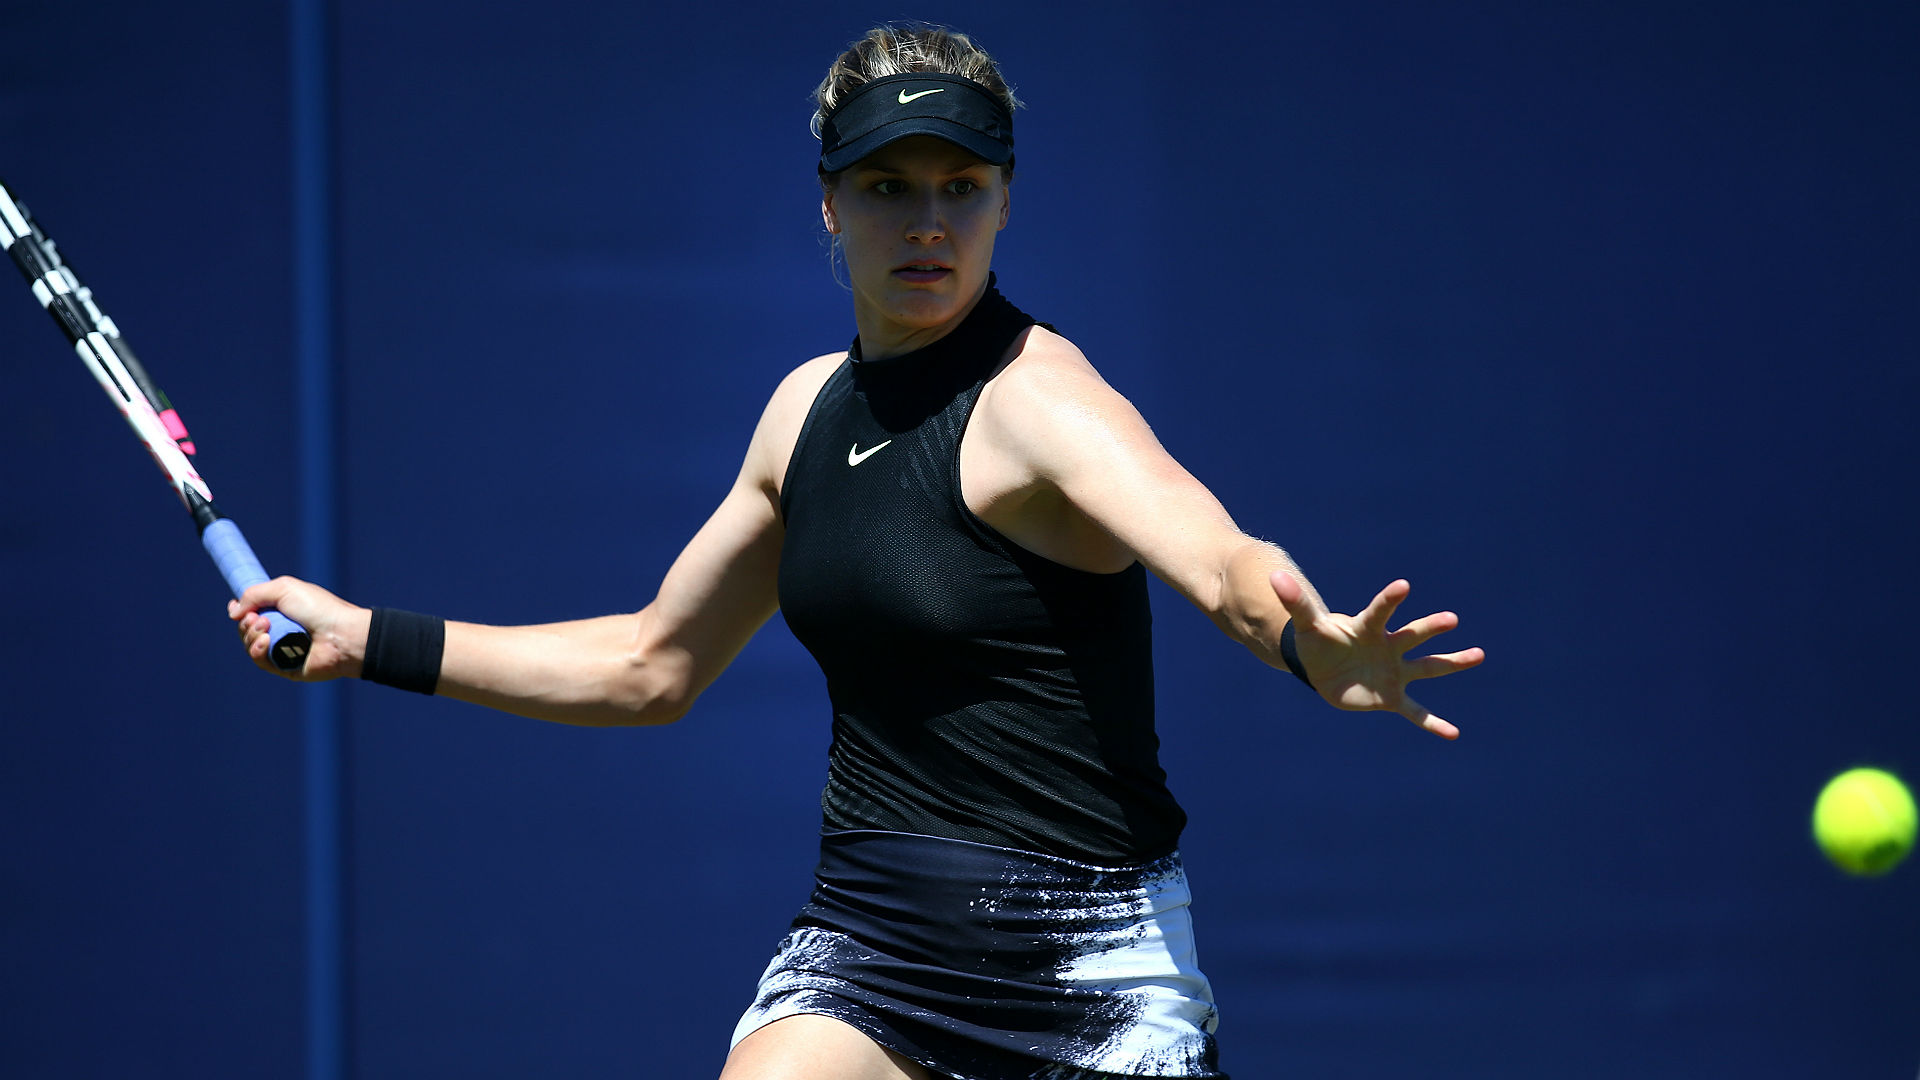 Canada's Bouchard bounced from Rogers Cup after first-round loss to Vekic